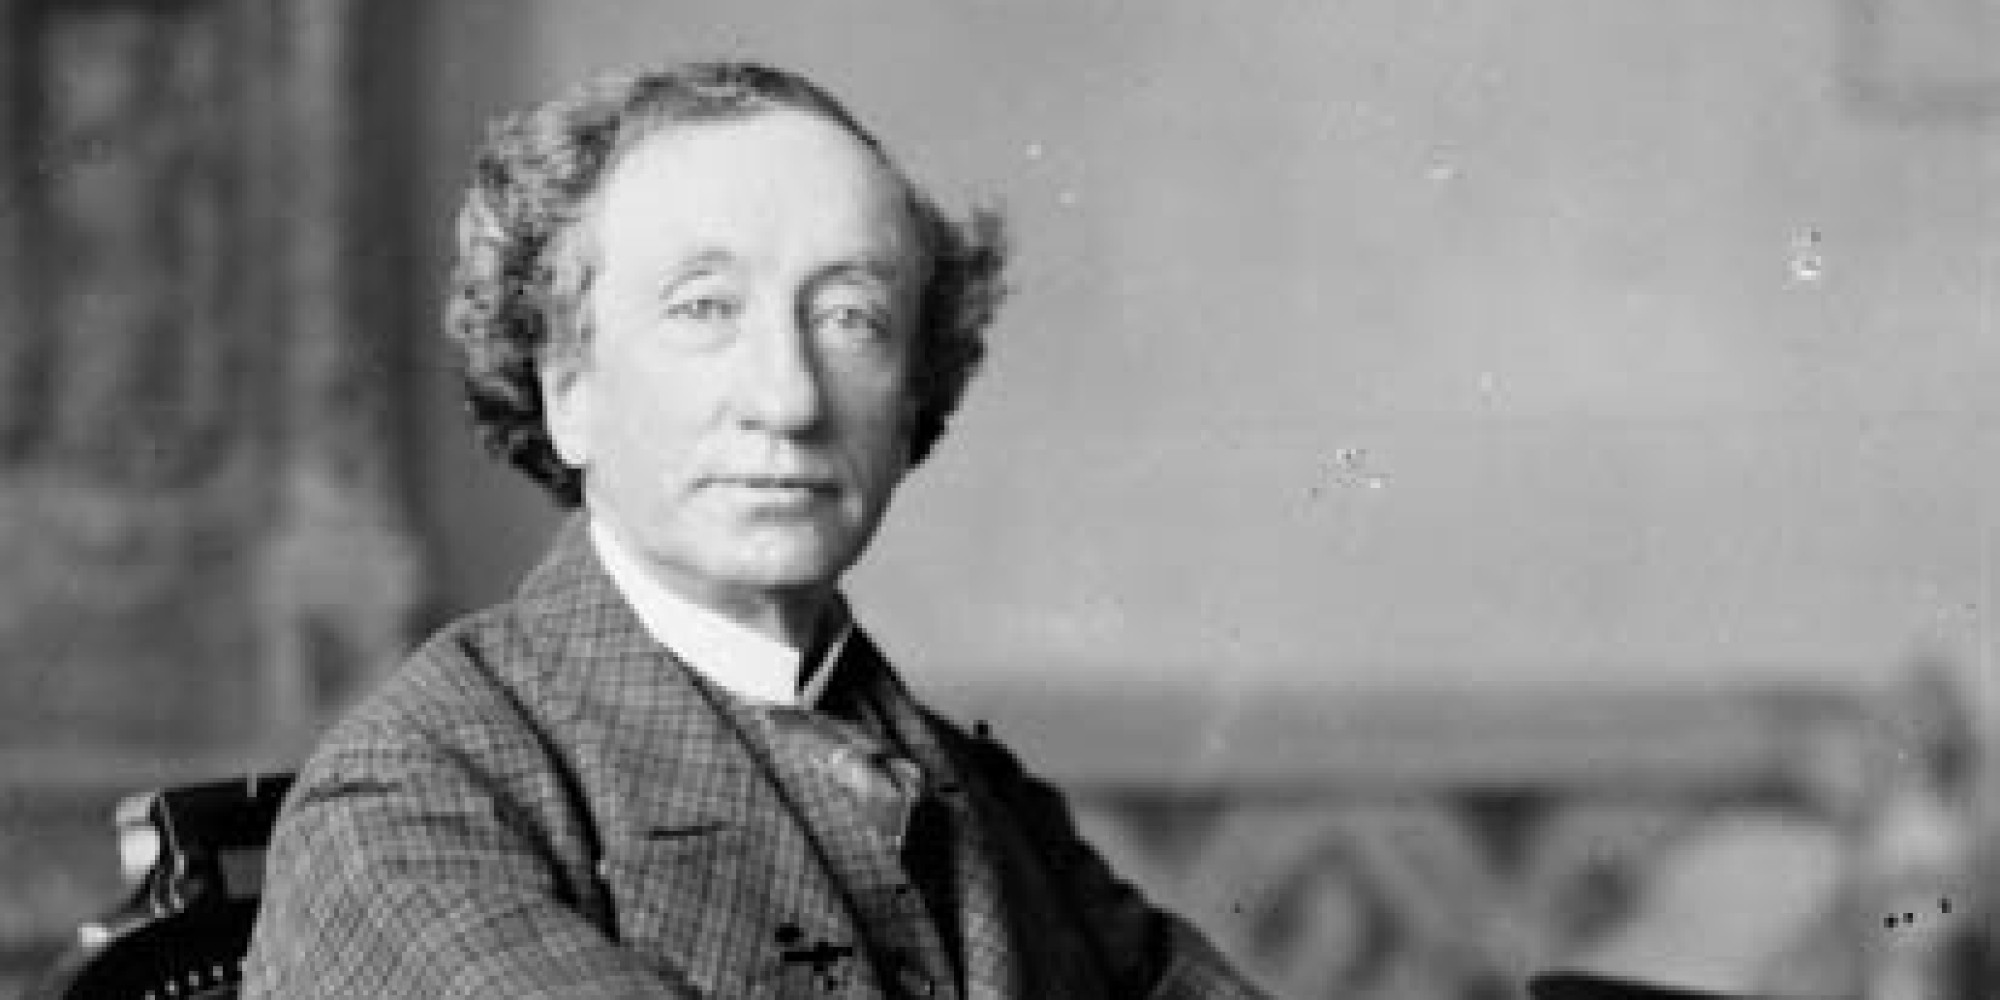 sir john a macdonald About eqao about the agency media room apply to work with eqao modernization the assessments administration dates results grade 3, primary division grade 6, junior division.